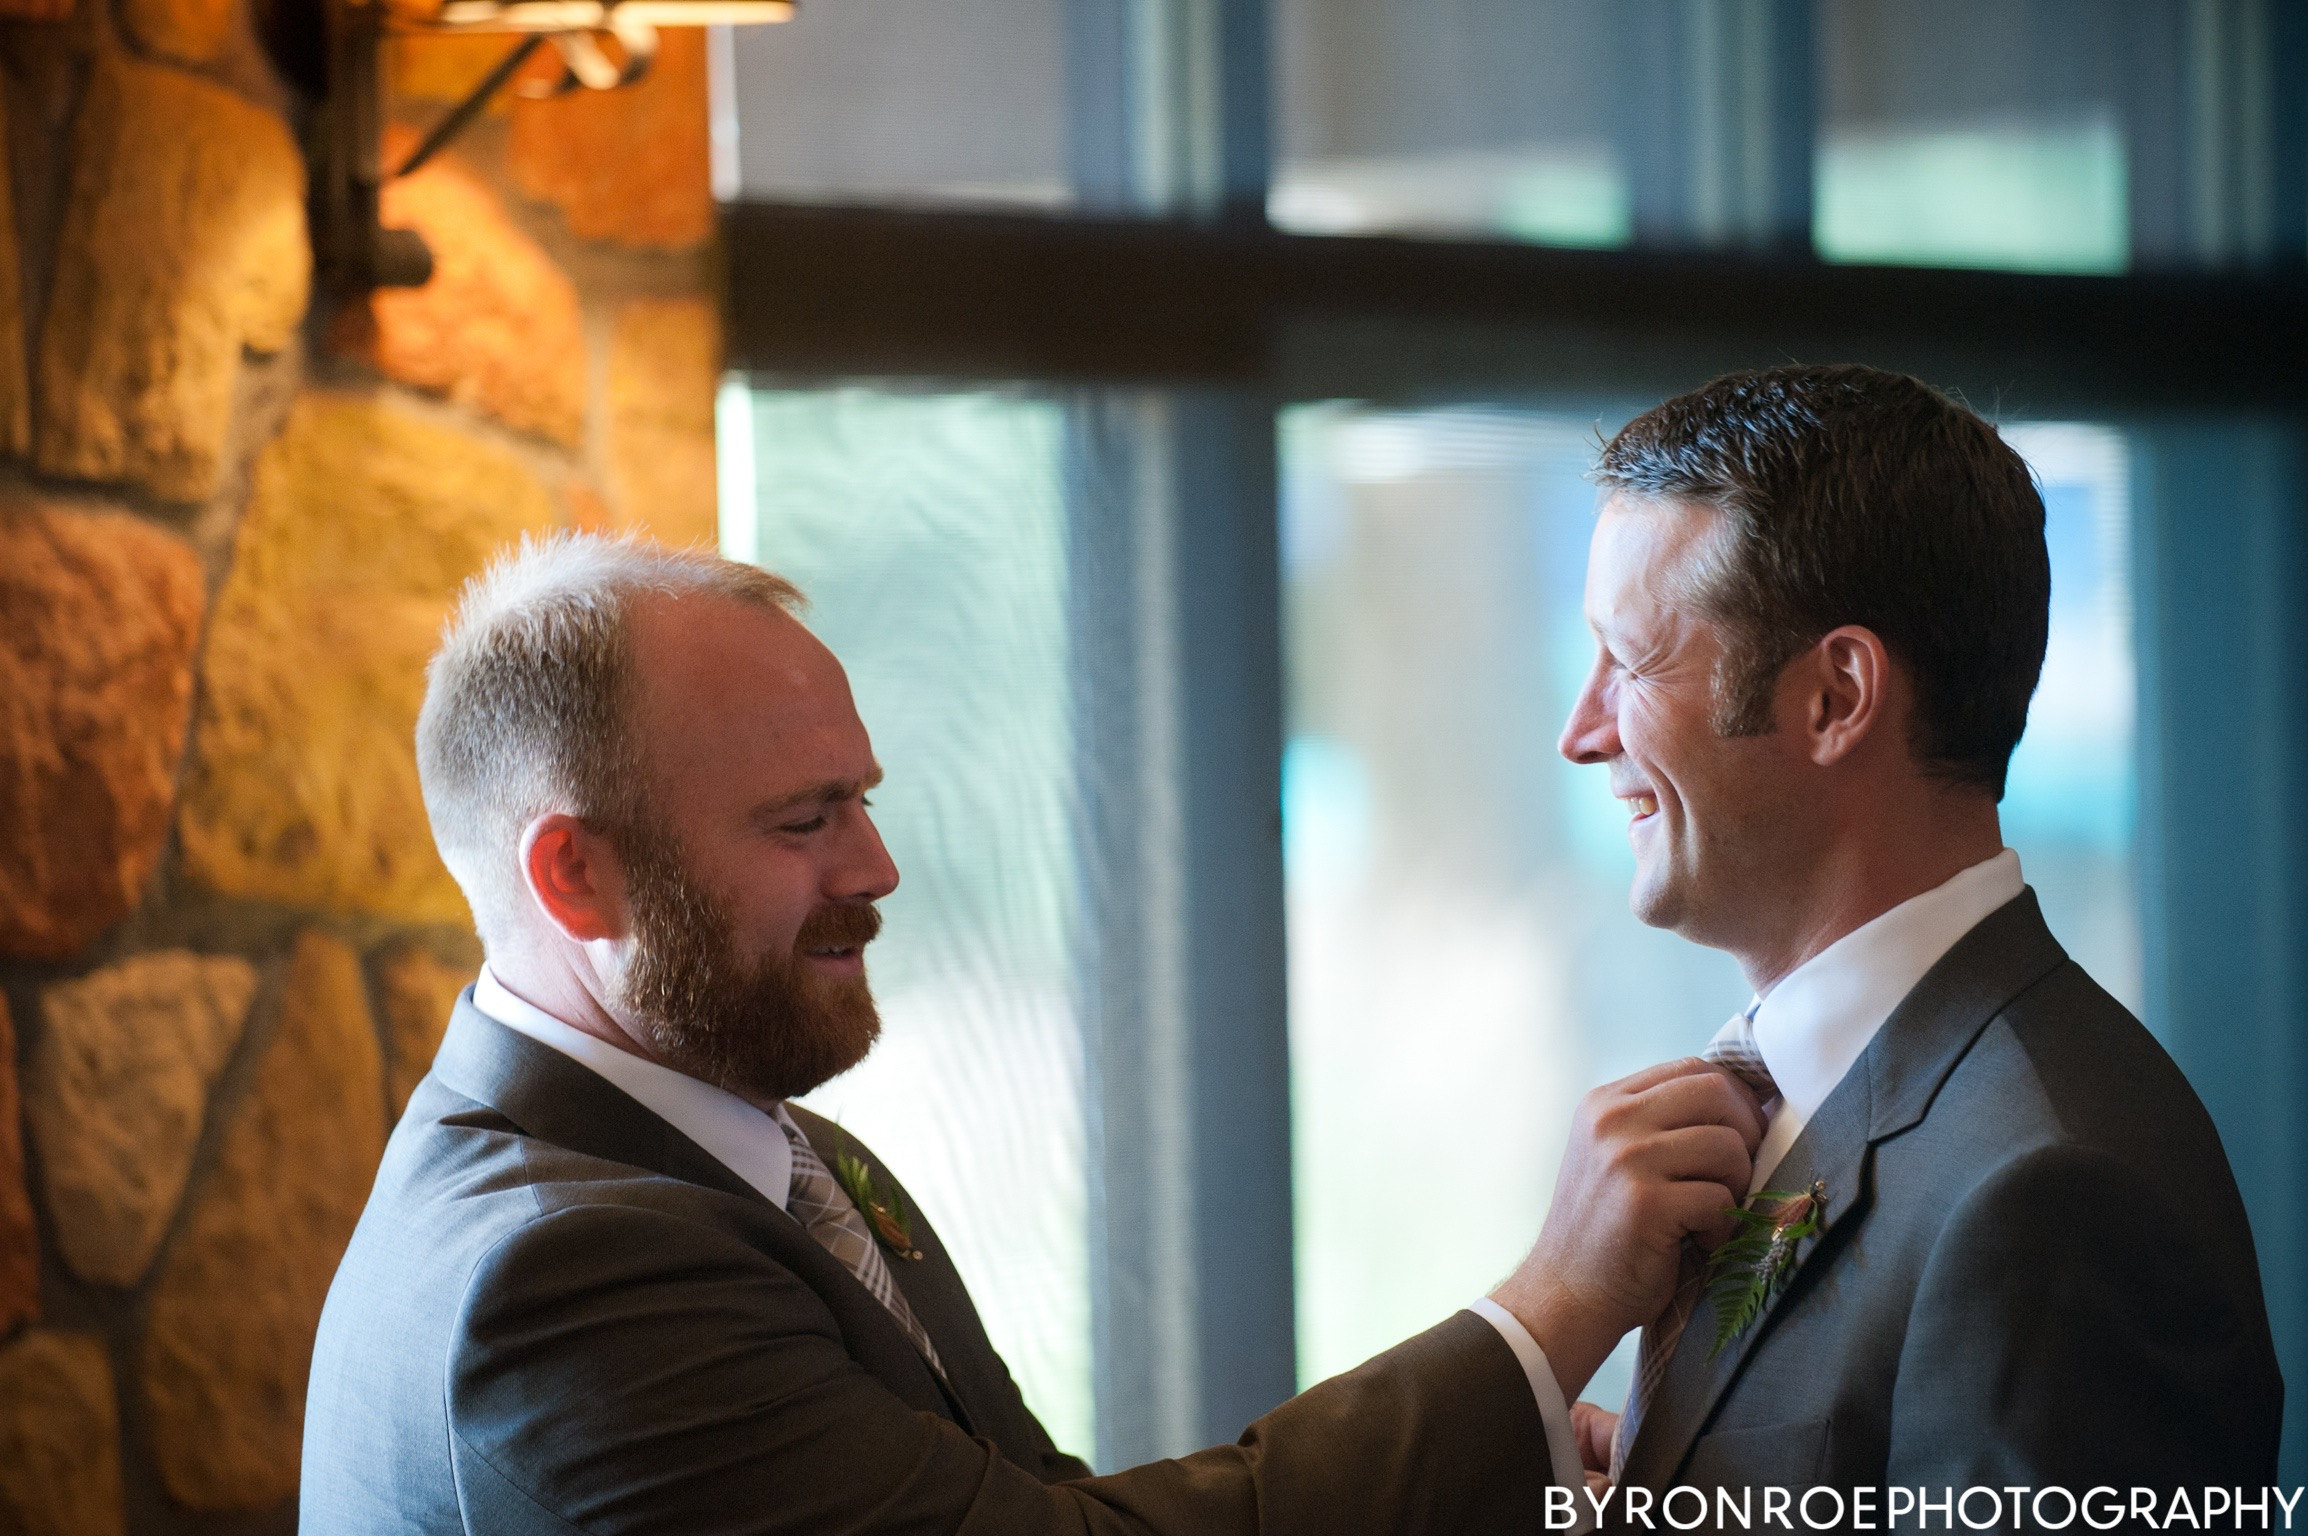 byronroephotography-houseonmetolius-caseydamon-wedding2012-high-39.jpg